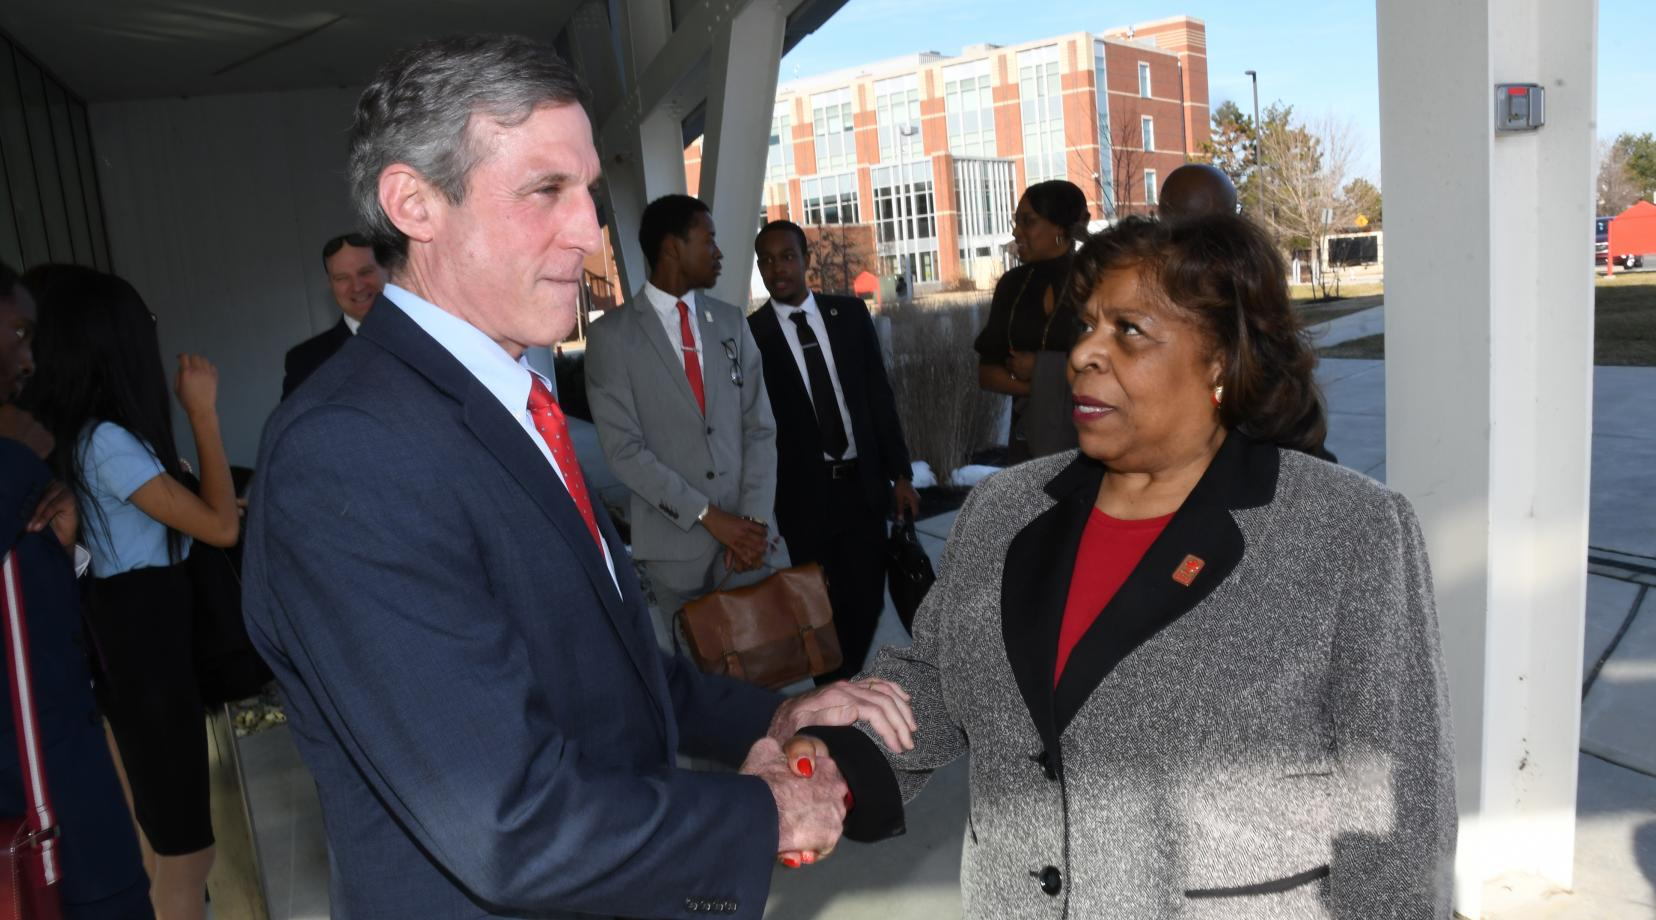 <p>Gov. John Carney is thanked by University President Wilma Mishoe for his visit to the campus on Feb. 5.</p>